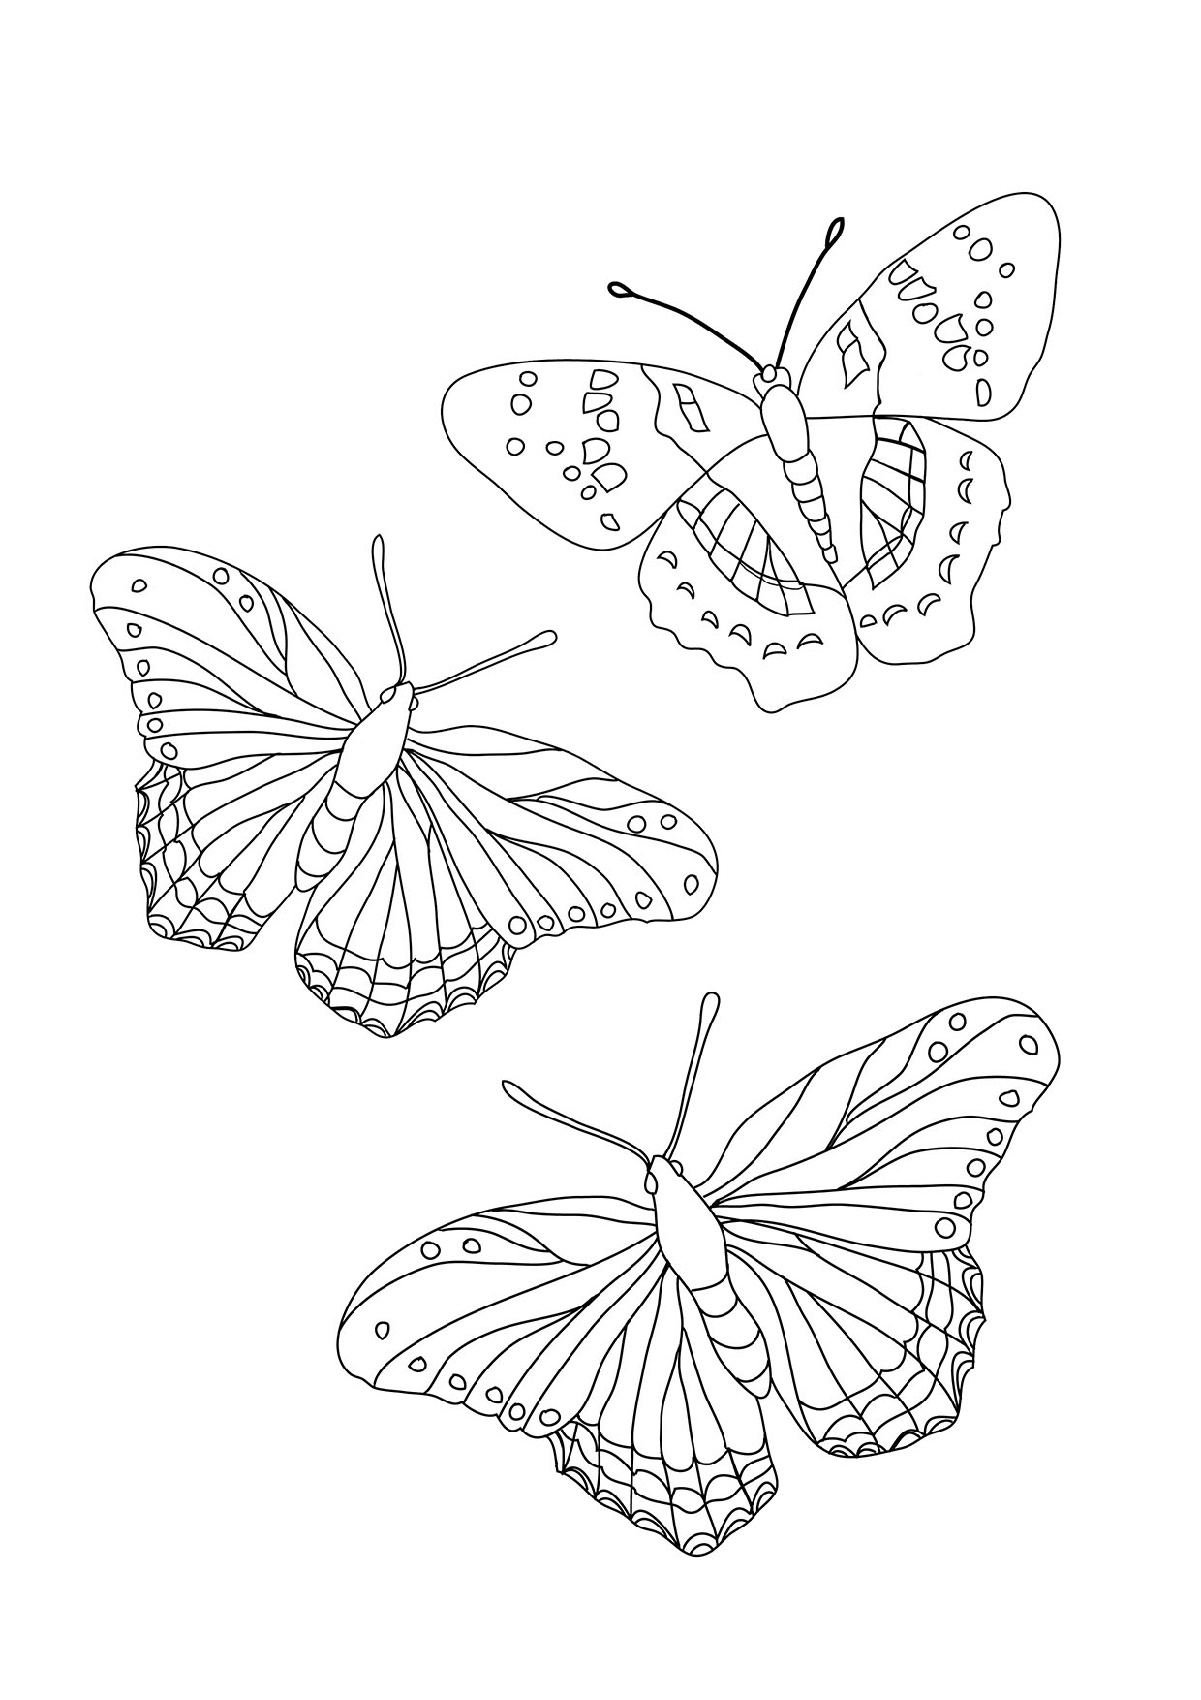 Color Code Butterfly Worksheet